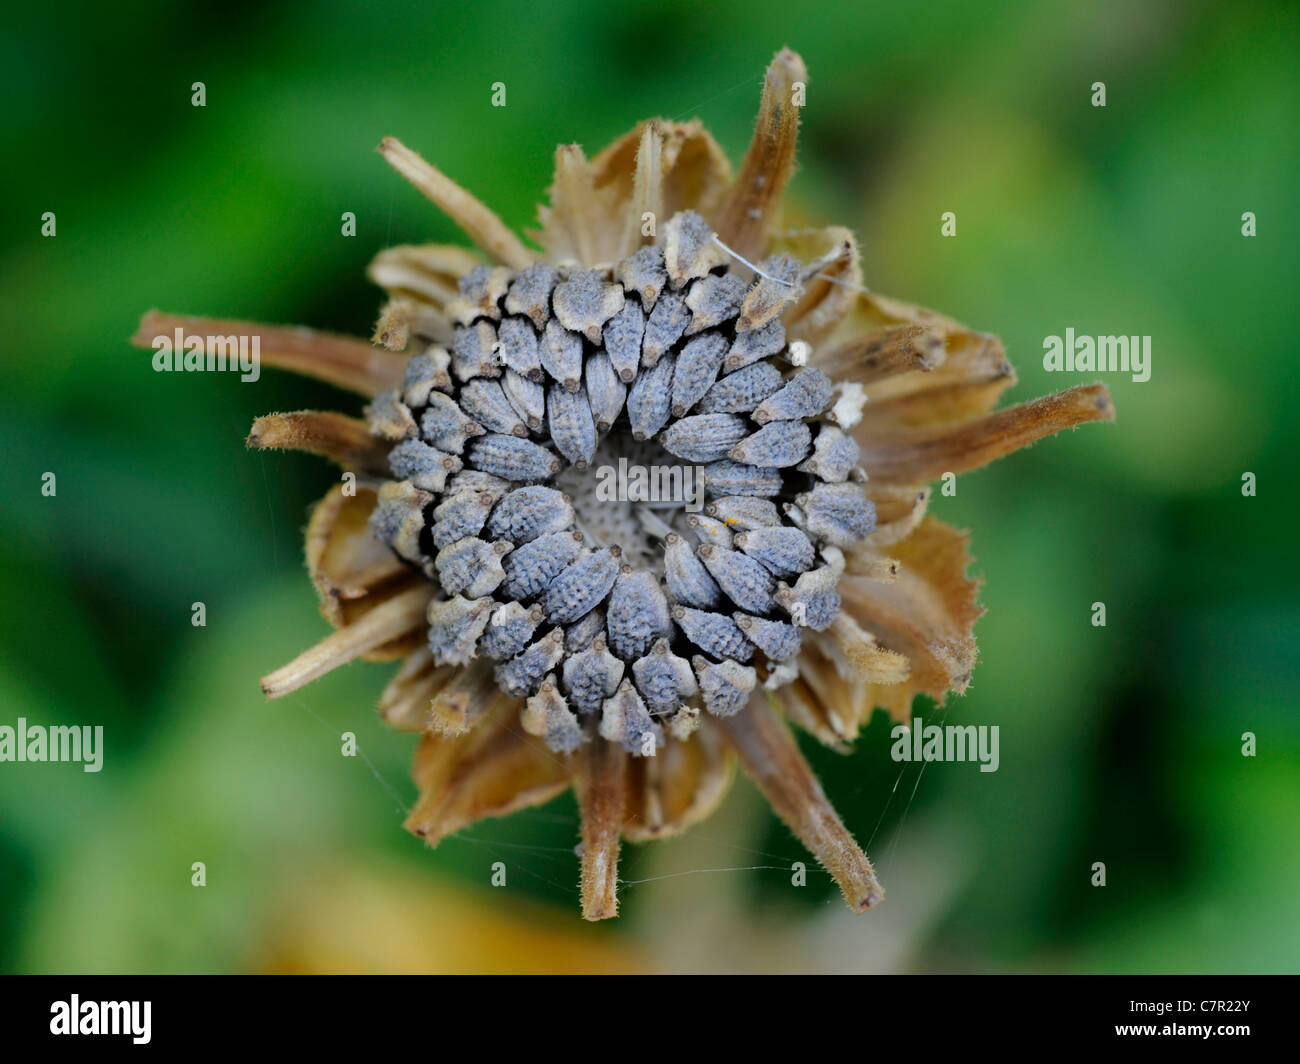 A close-up of a dried calendula flower showing a seedhead with seeds - Stock Image